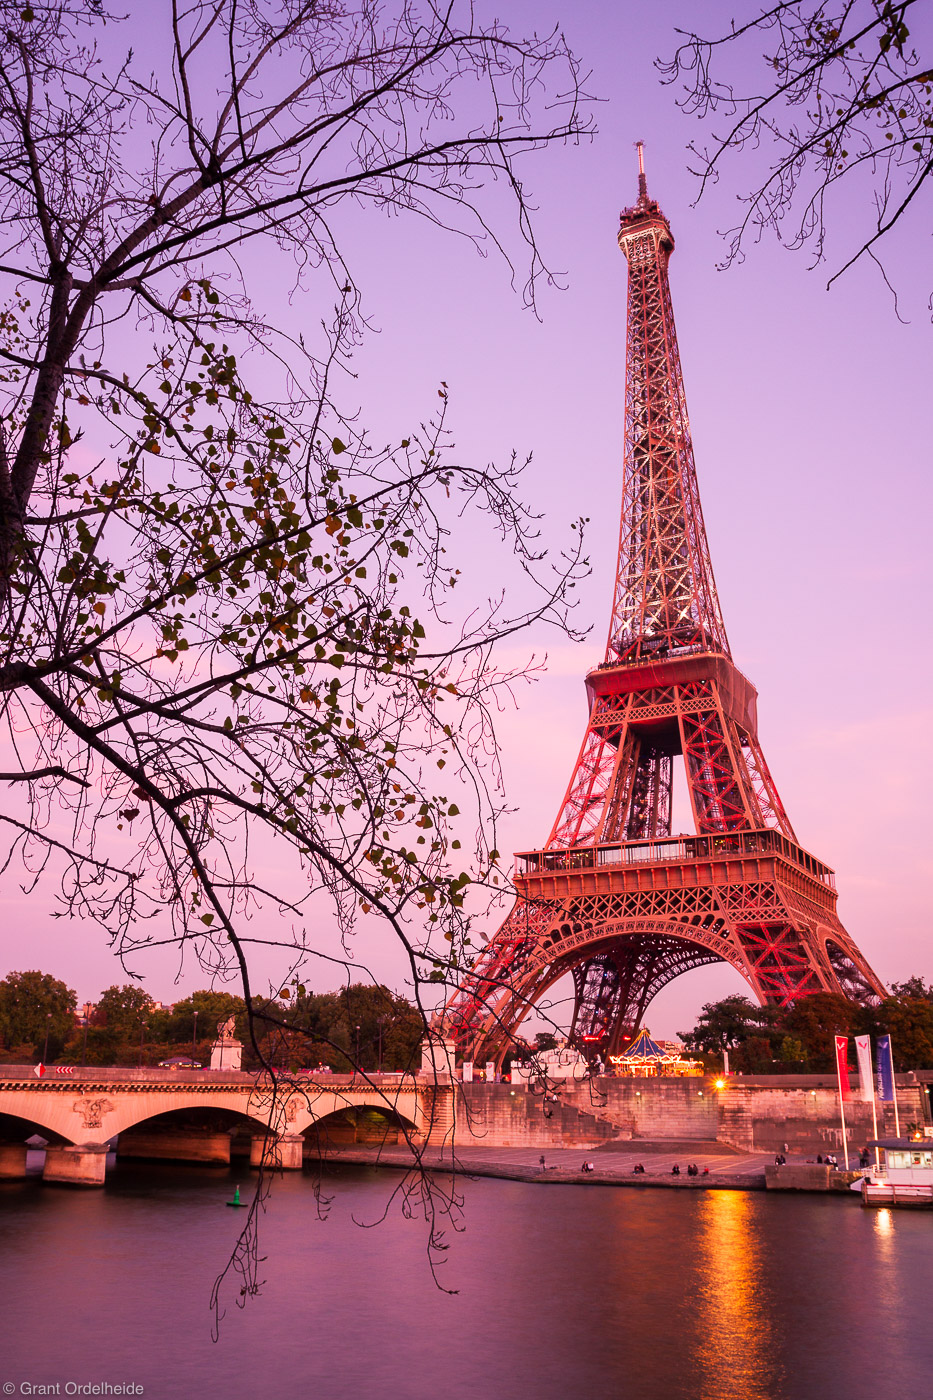 eiffel tower, paris, france, landmark, world, reflected, seine, river, photo